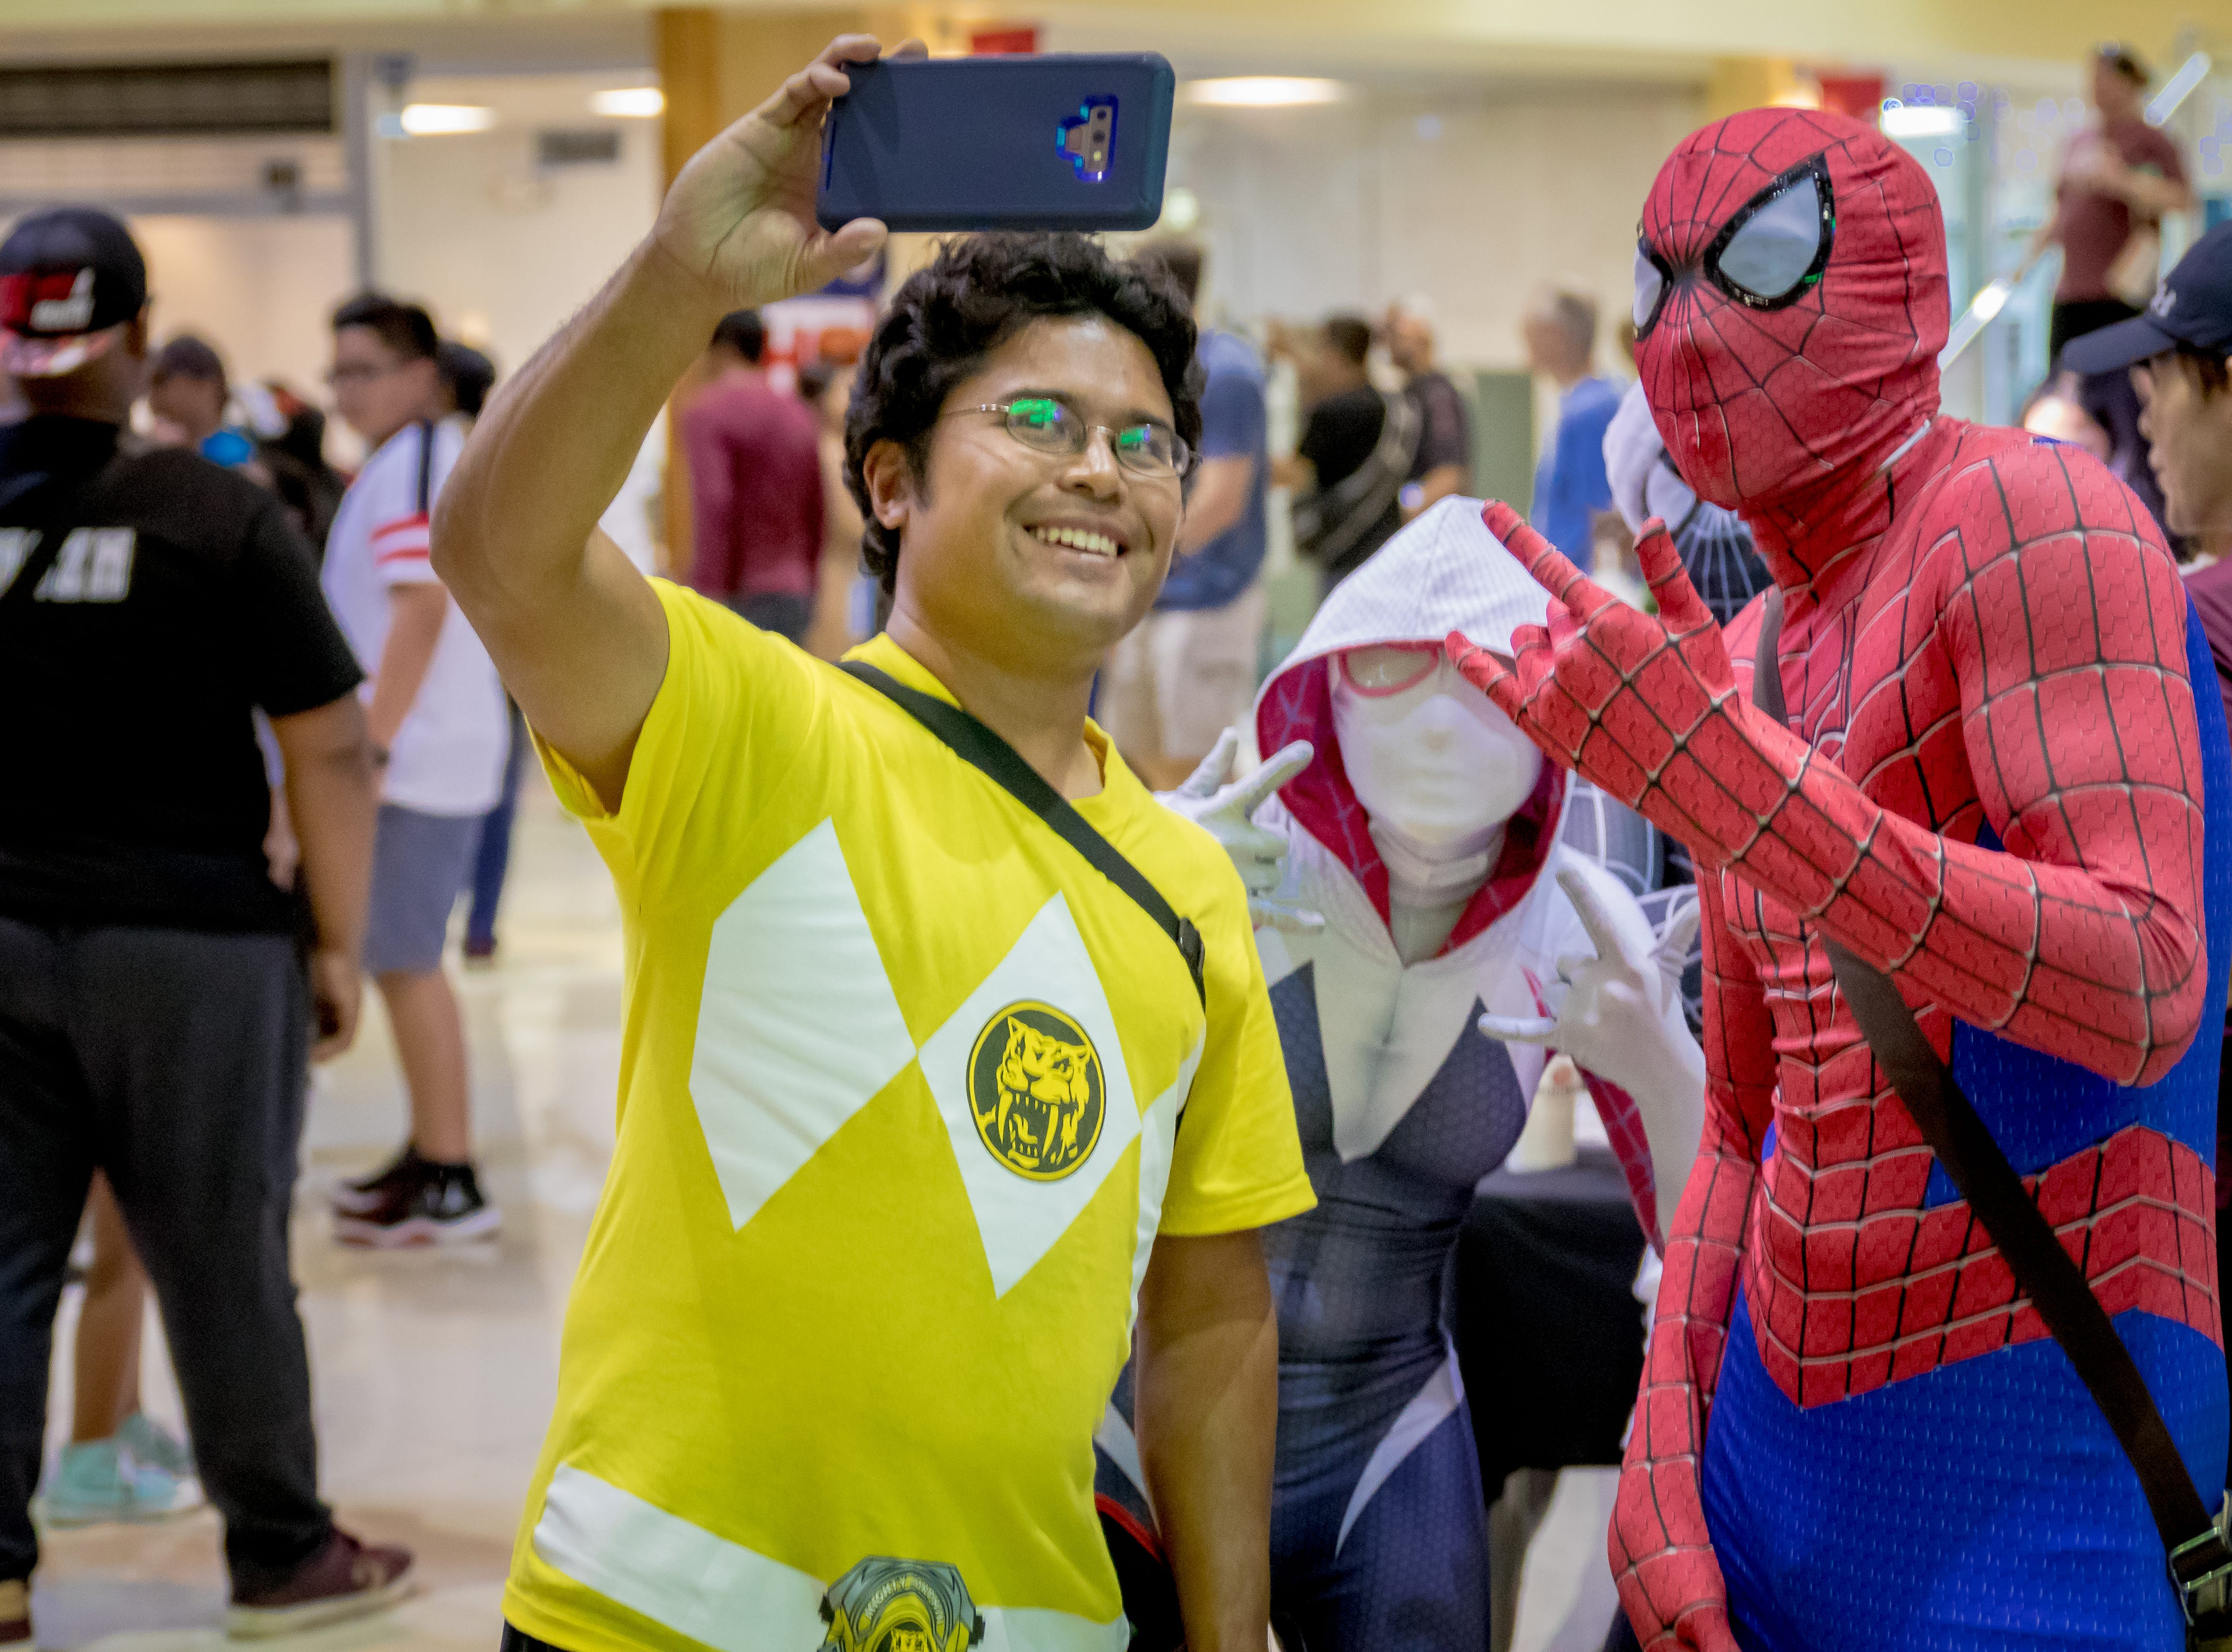 Attendees take self portrait with cosplayers during the Herocon event held at Agana Shopping Center on Dec. 9.